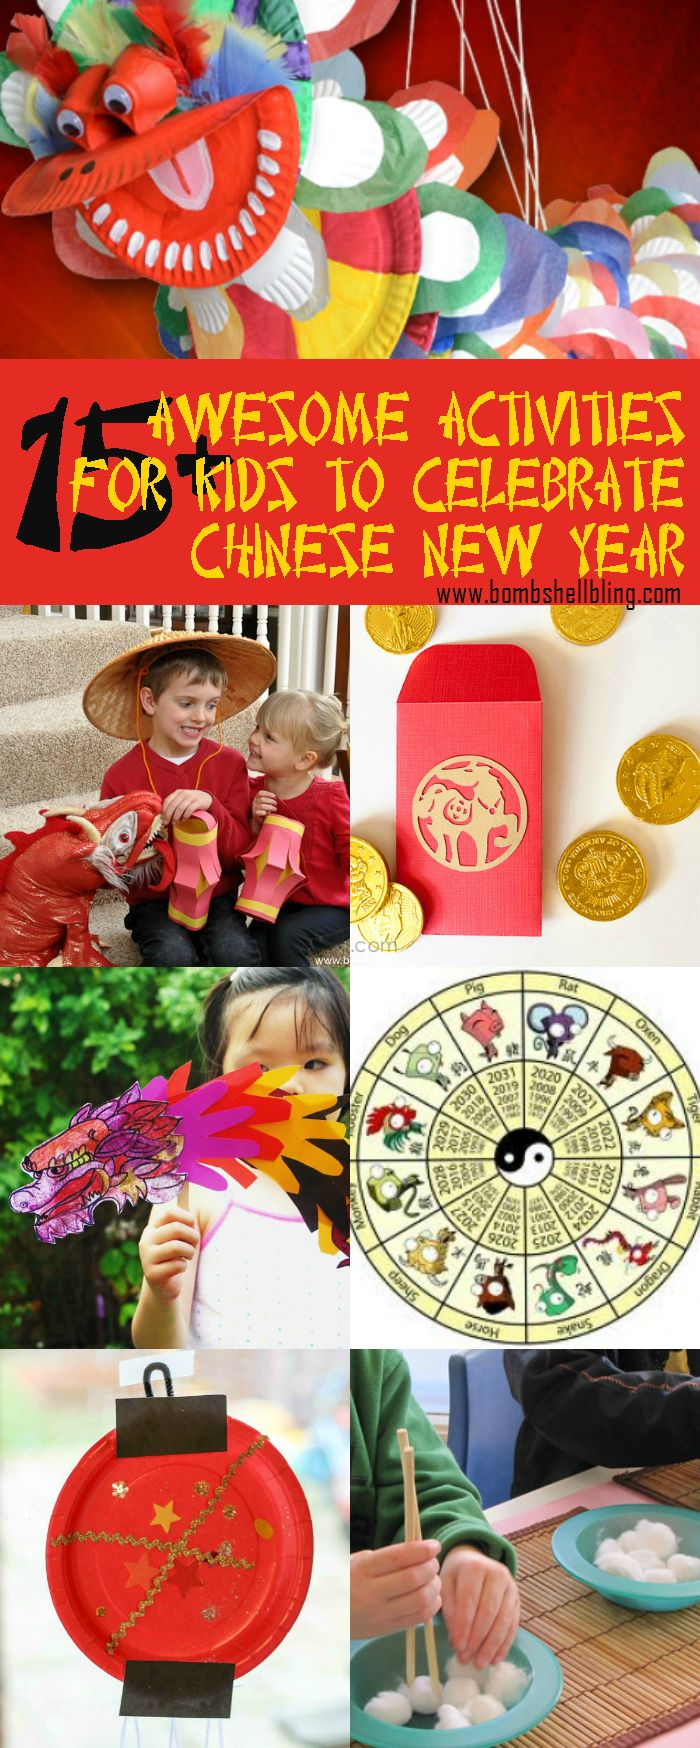 15  Chinese New Year Activities for Kids - I love these ideas!  Food, kid crafts, traditions, and games!